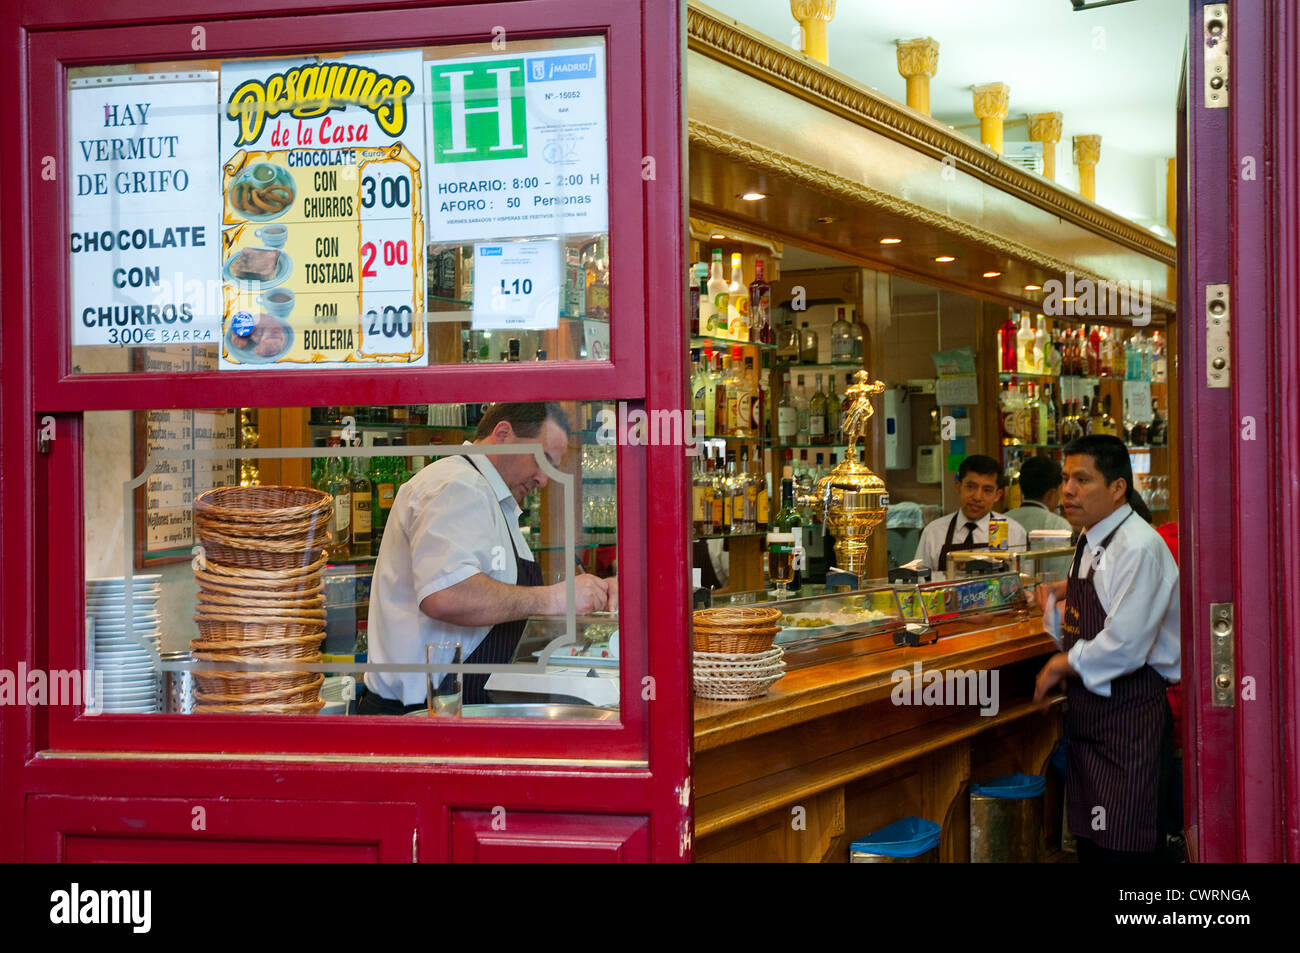 Waiters in a typical tavern. Main Square, Madrid, Spain. - Stock Image